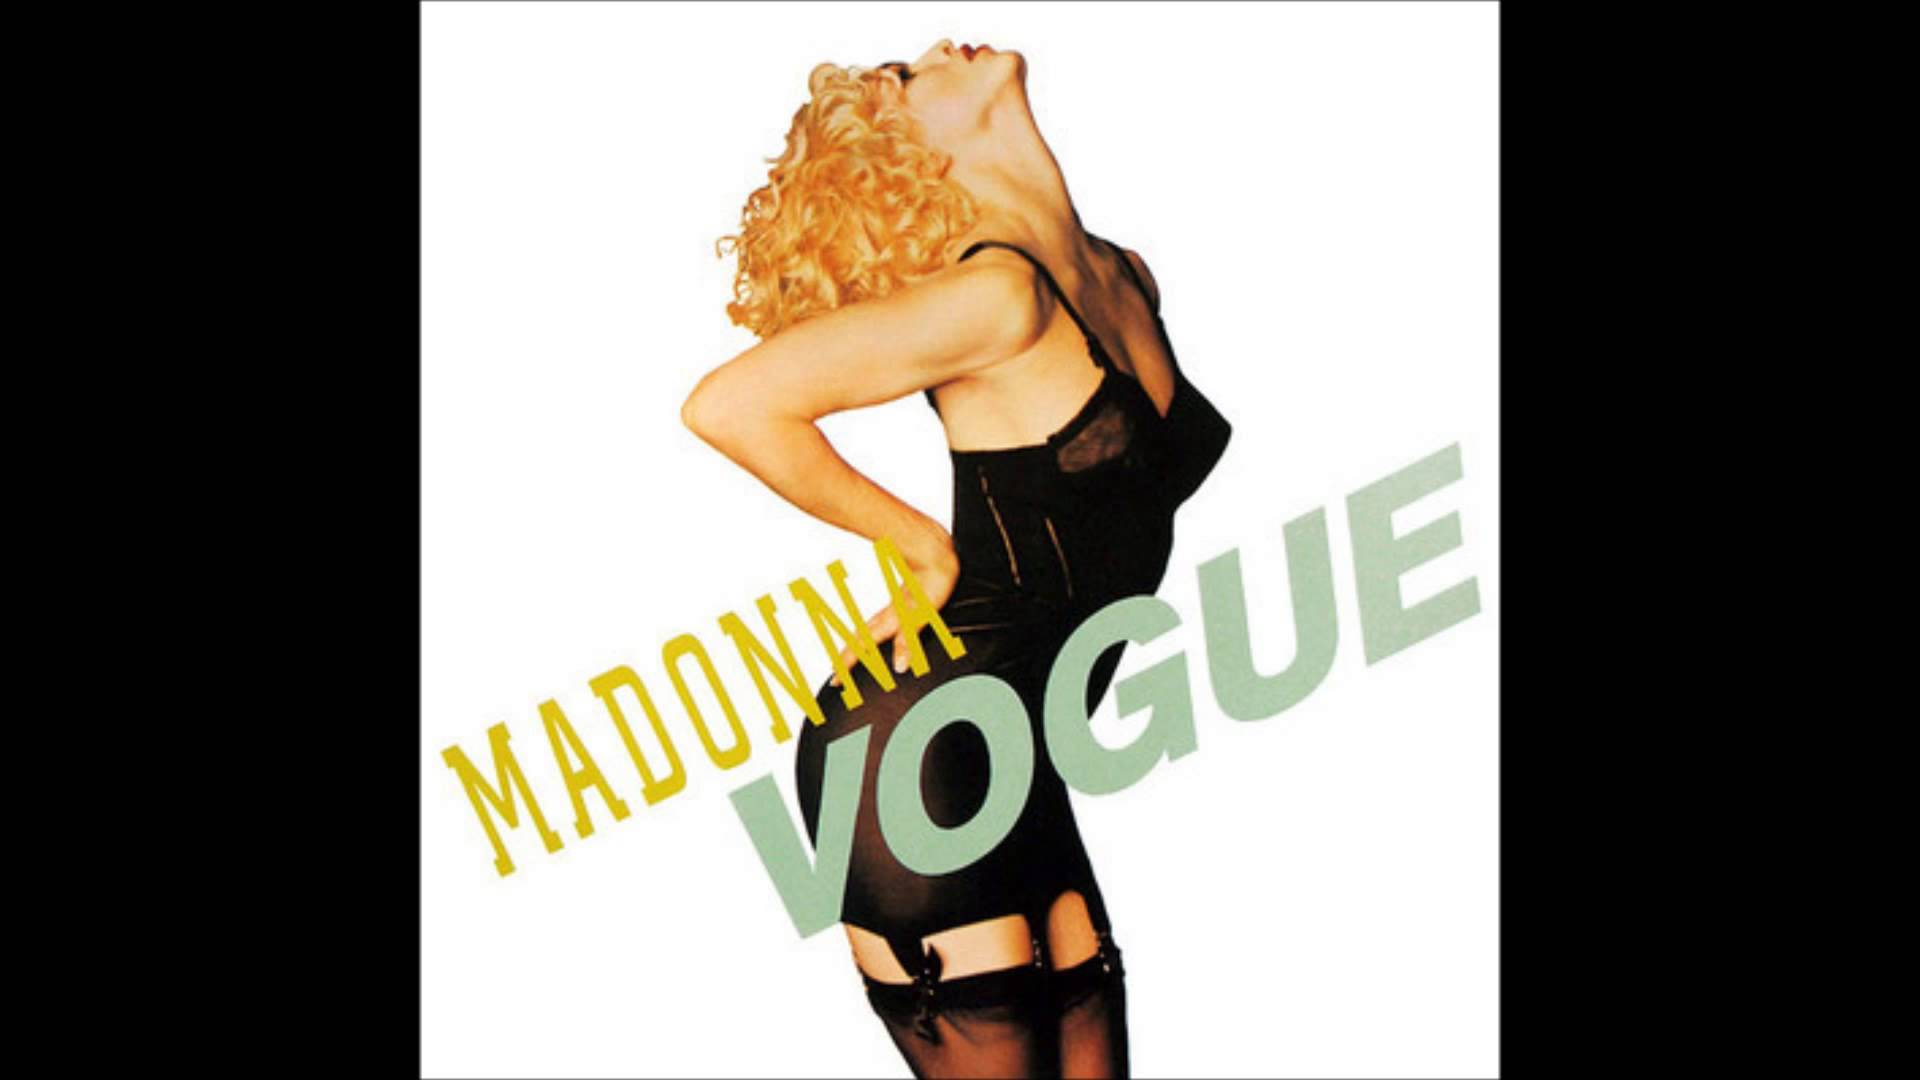 Madonna Vogue DJ Bianco Video Mix